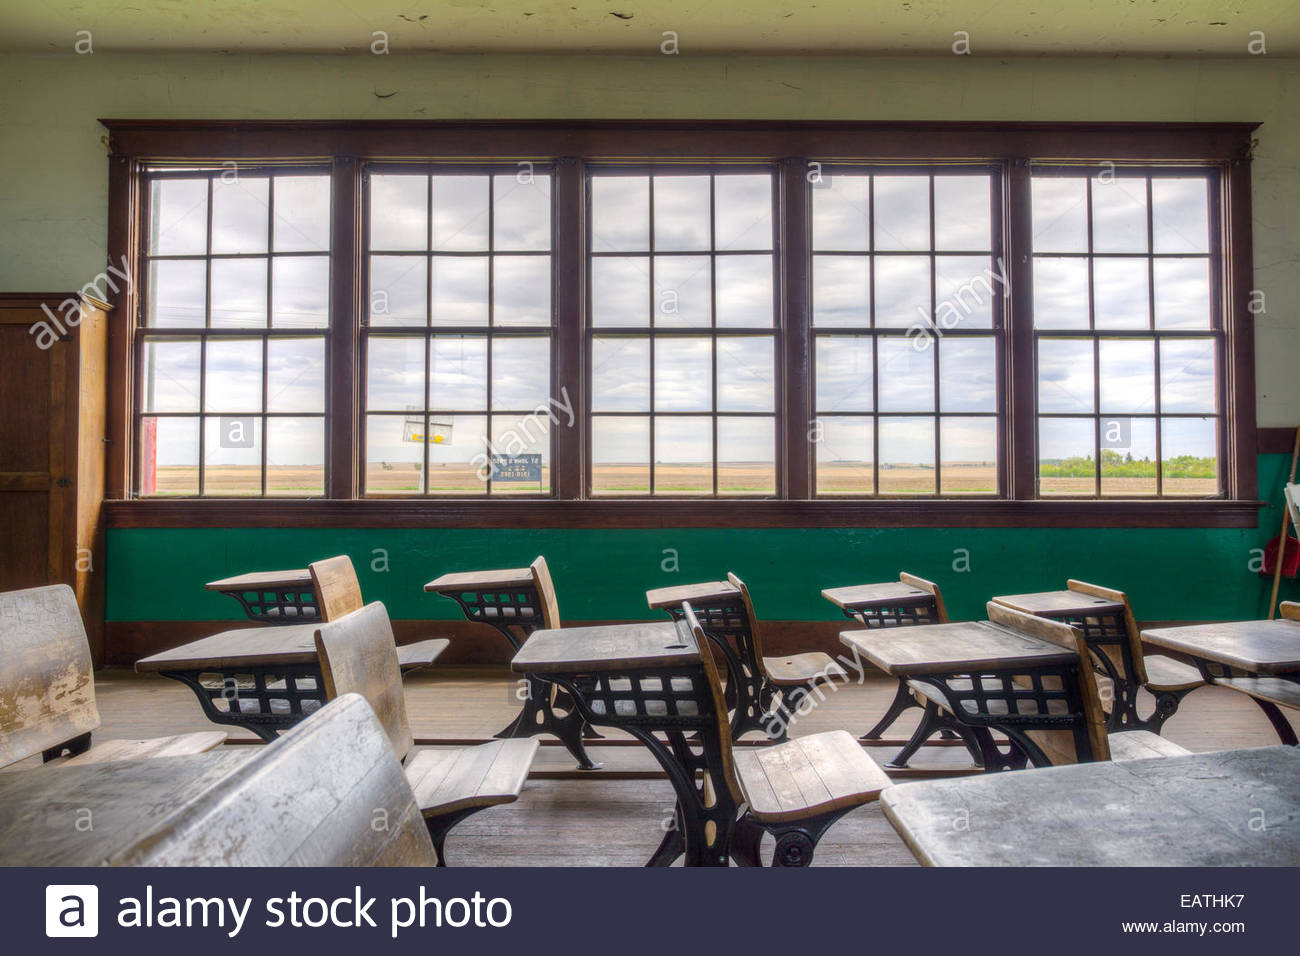 An antique classroom near Leader. - Stock Image